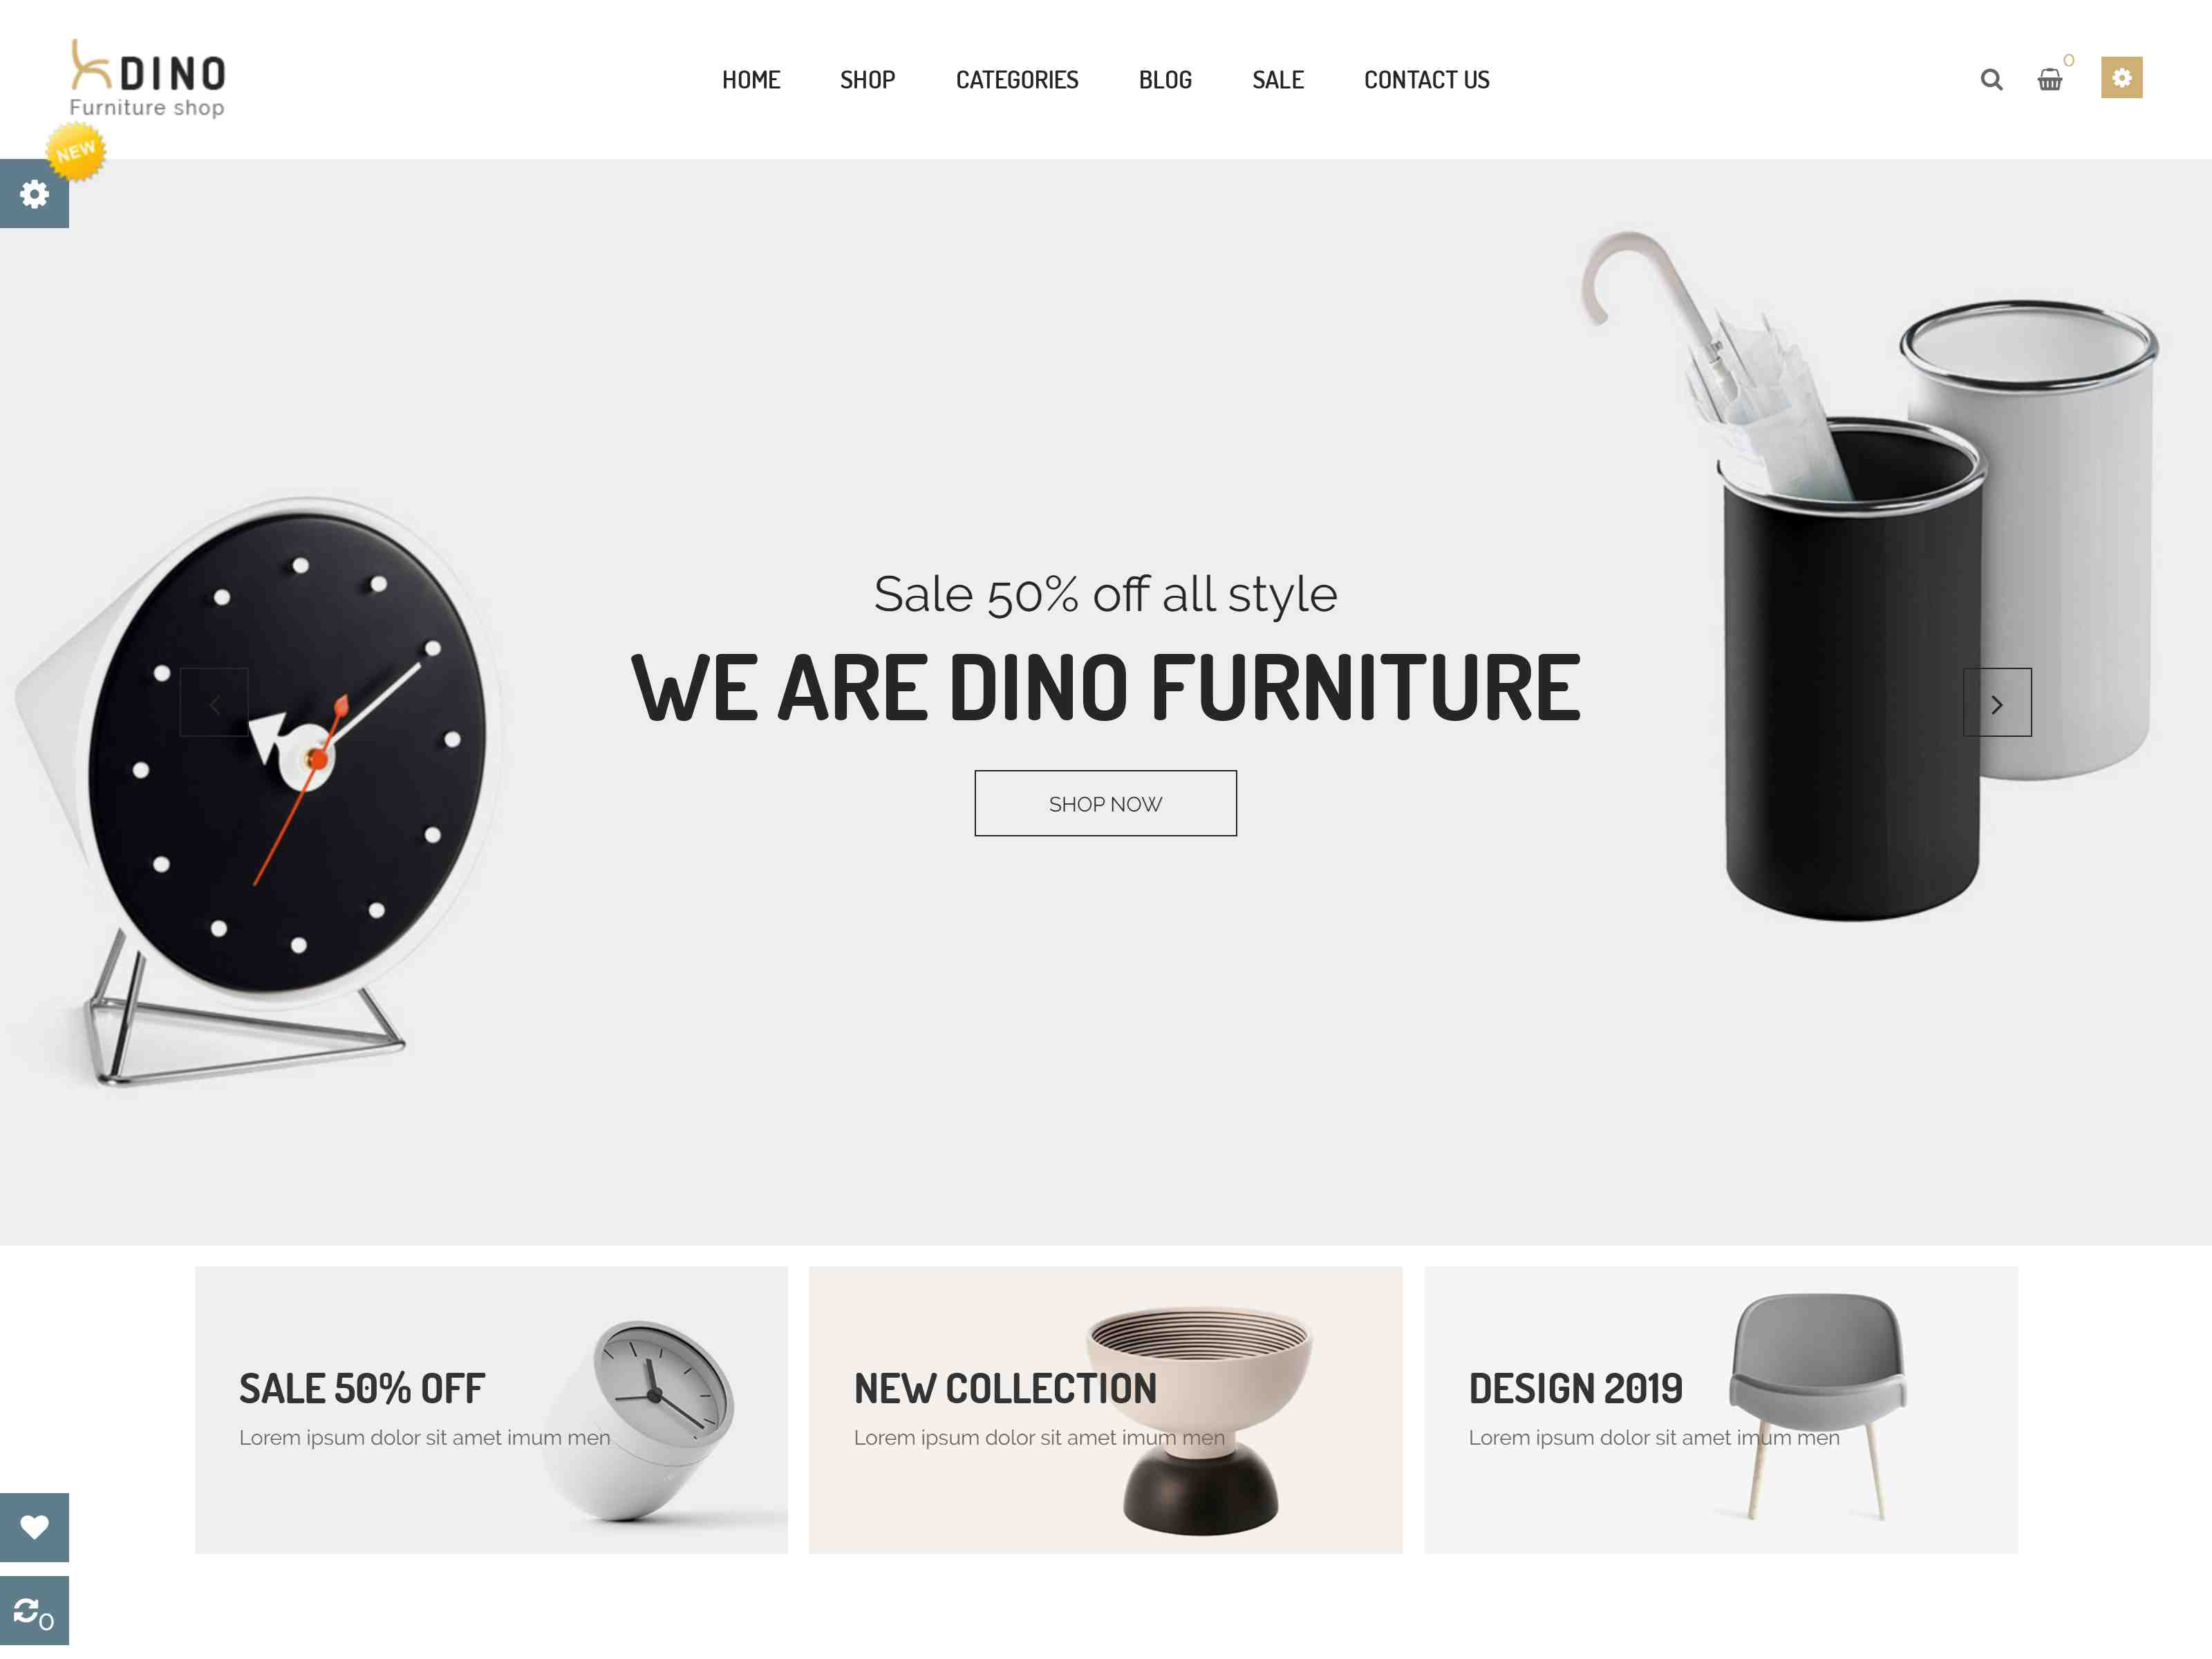 Dino - Luxury Furniture Shop PrestaShop 1.7 Theme